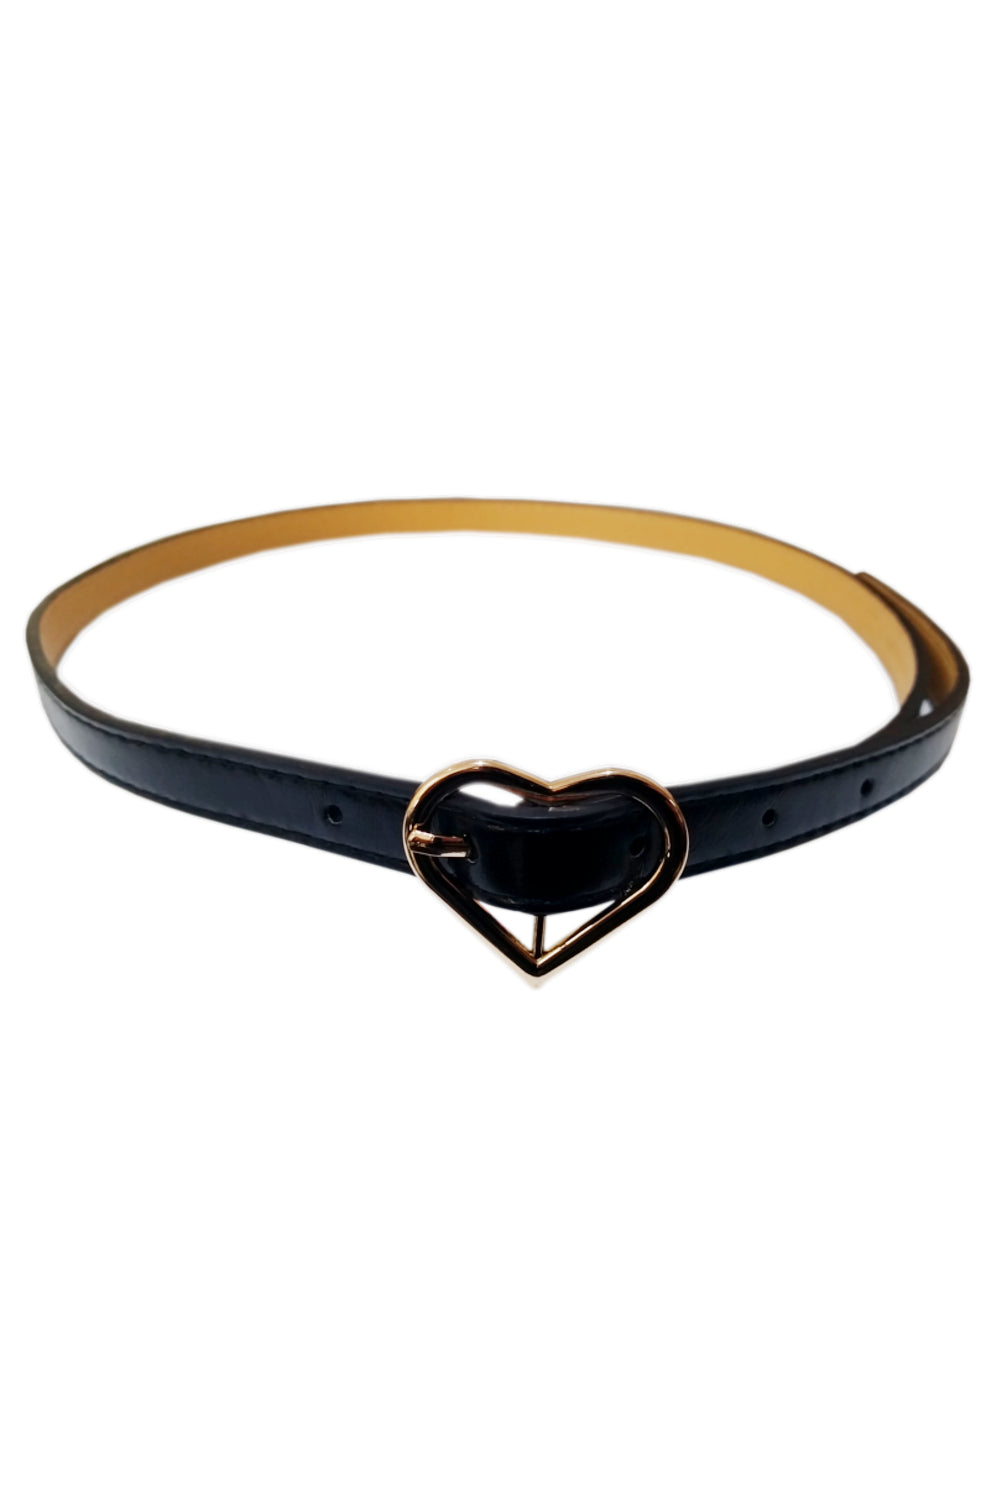 Black Heart Rose Gold Buckle Belt - Pretty Kitty Fashion